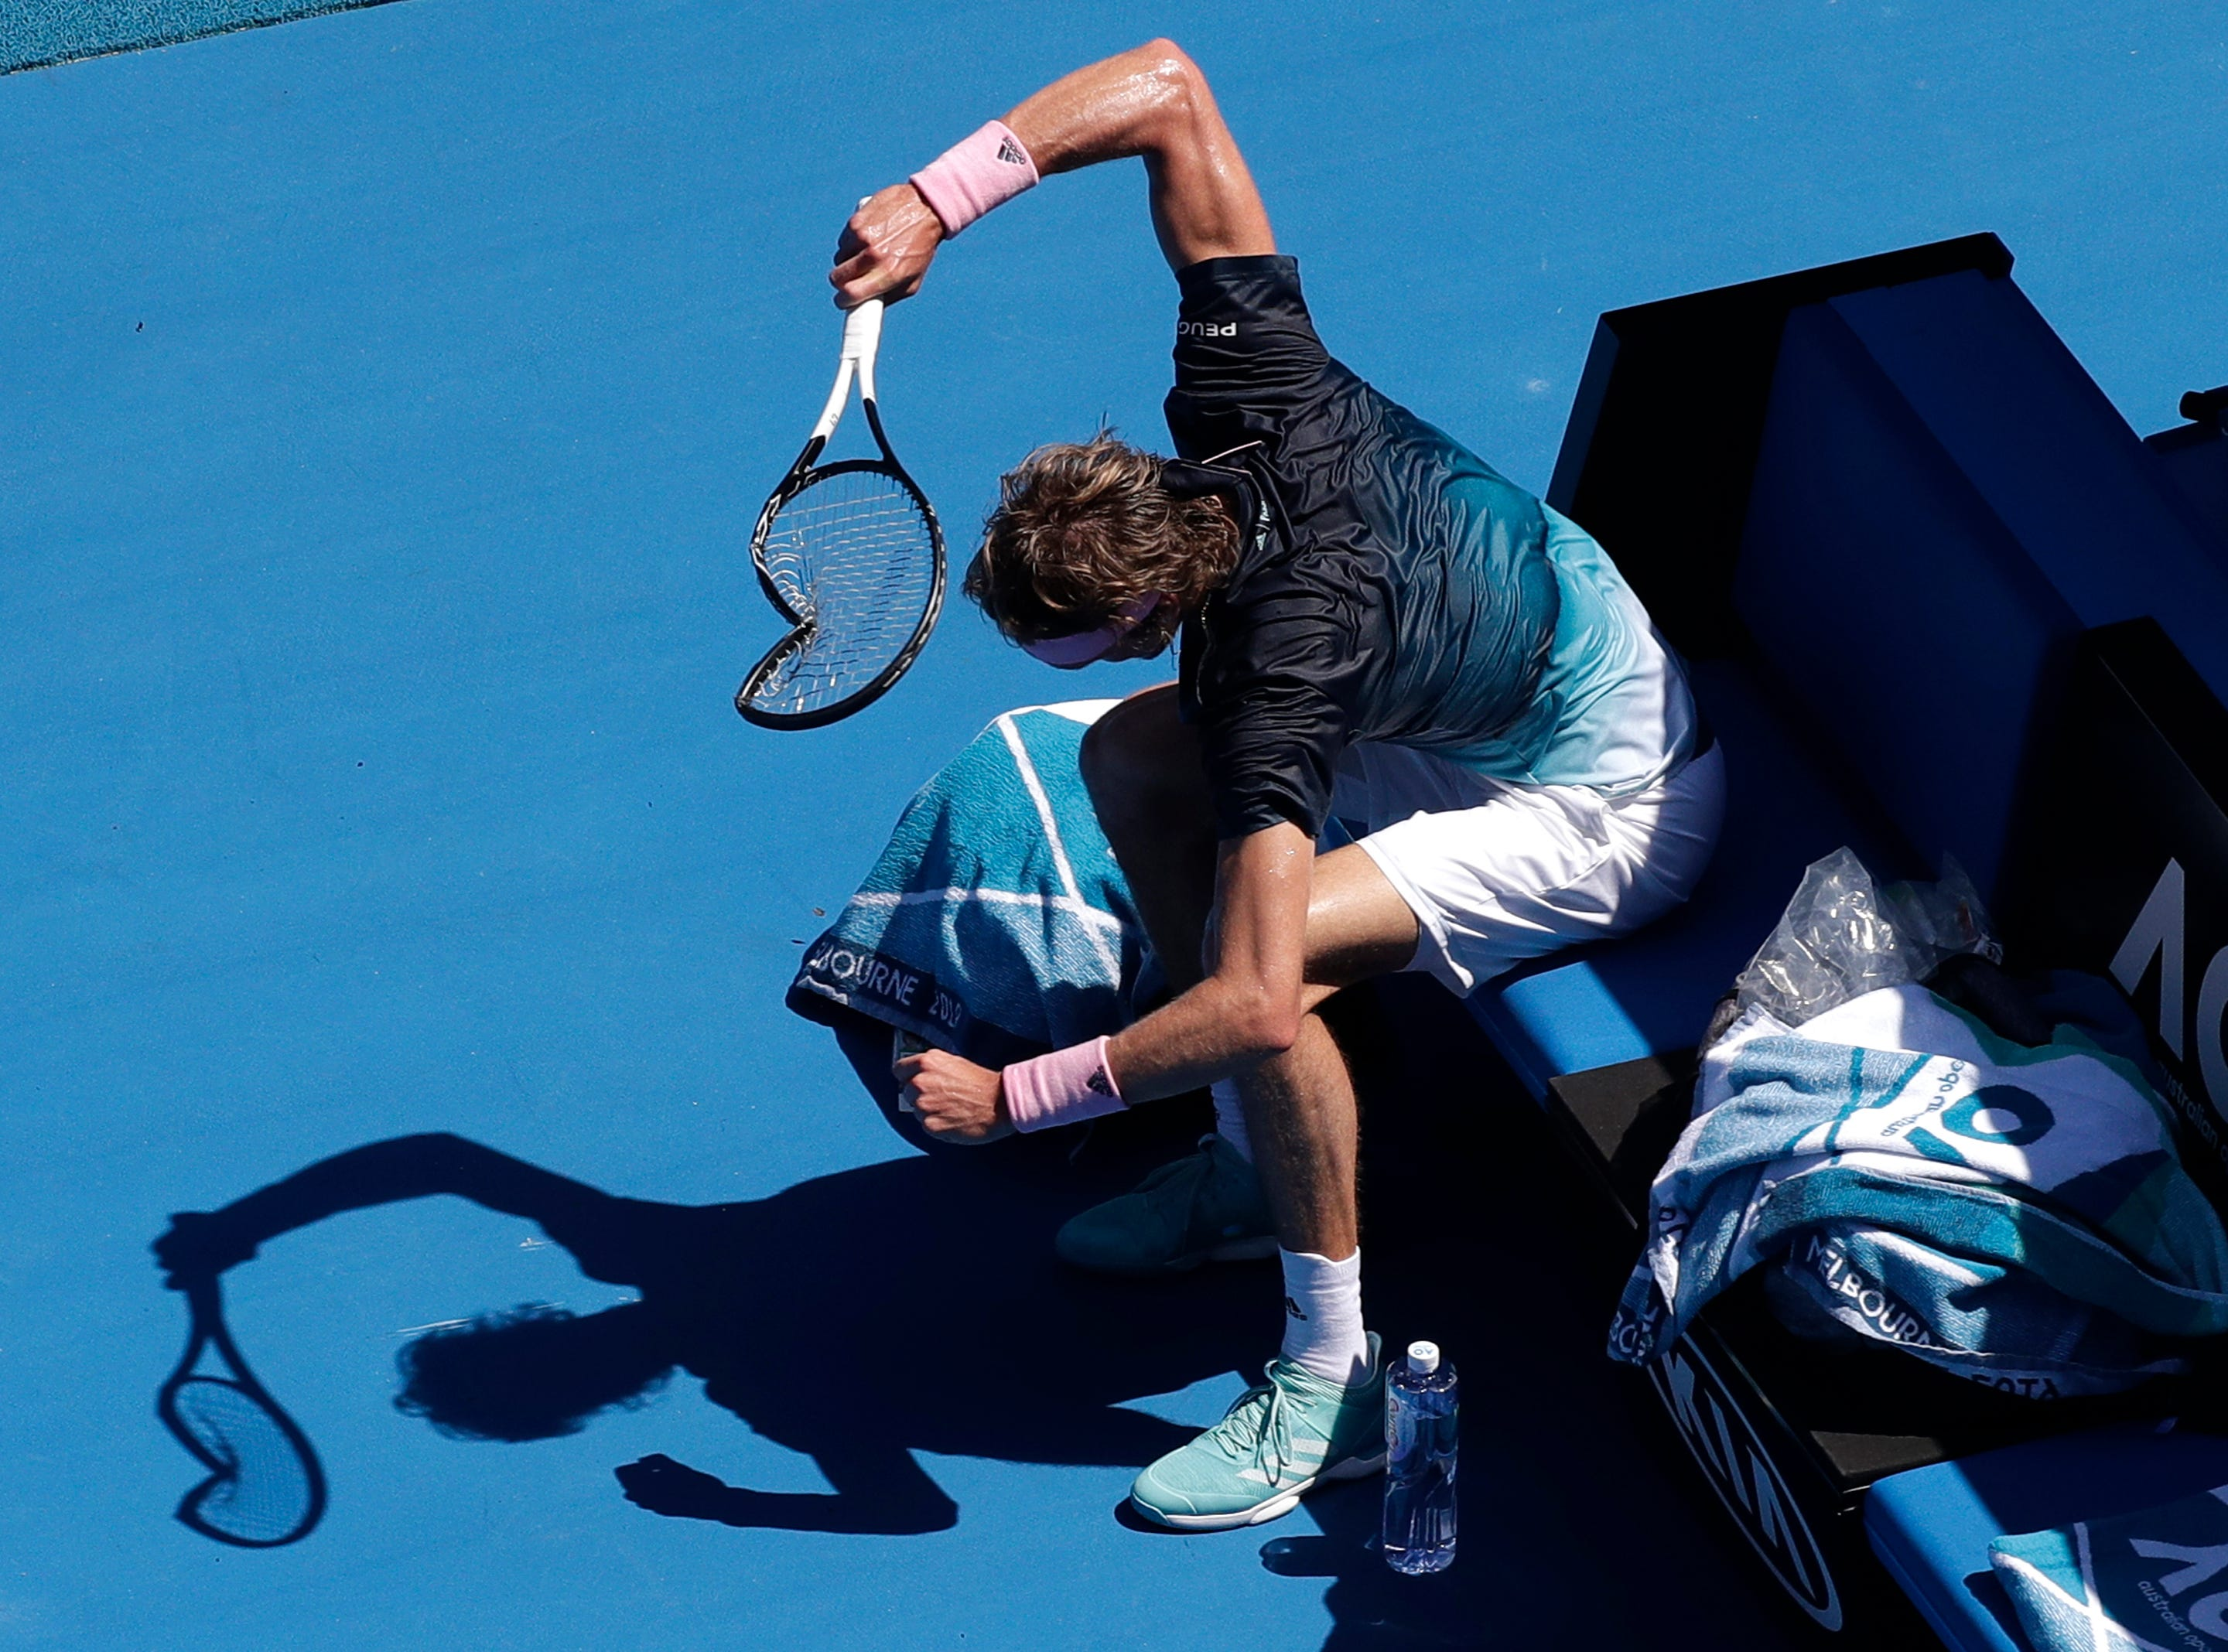 Alexander Zverev smashes his racket in frustration during his fourth-round match against Milos Raonic at the Australian Open.